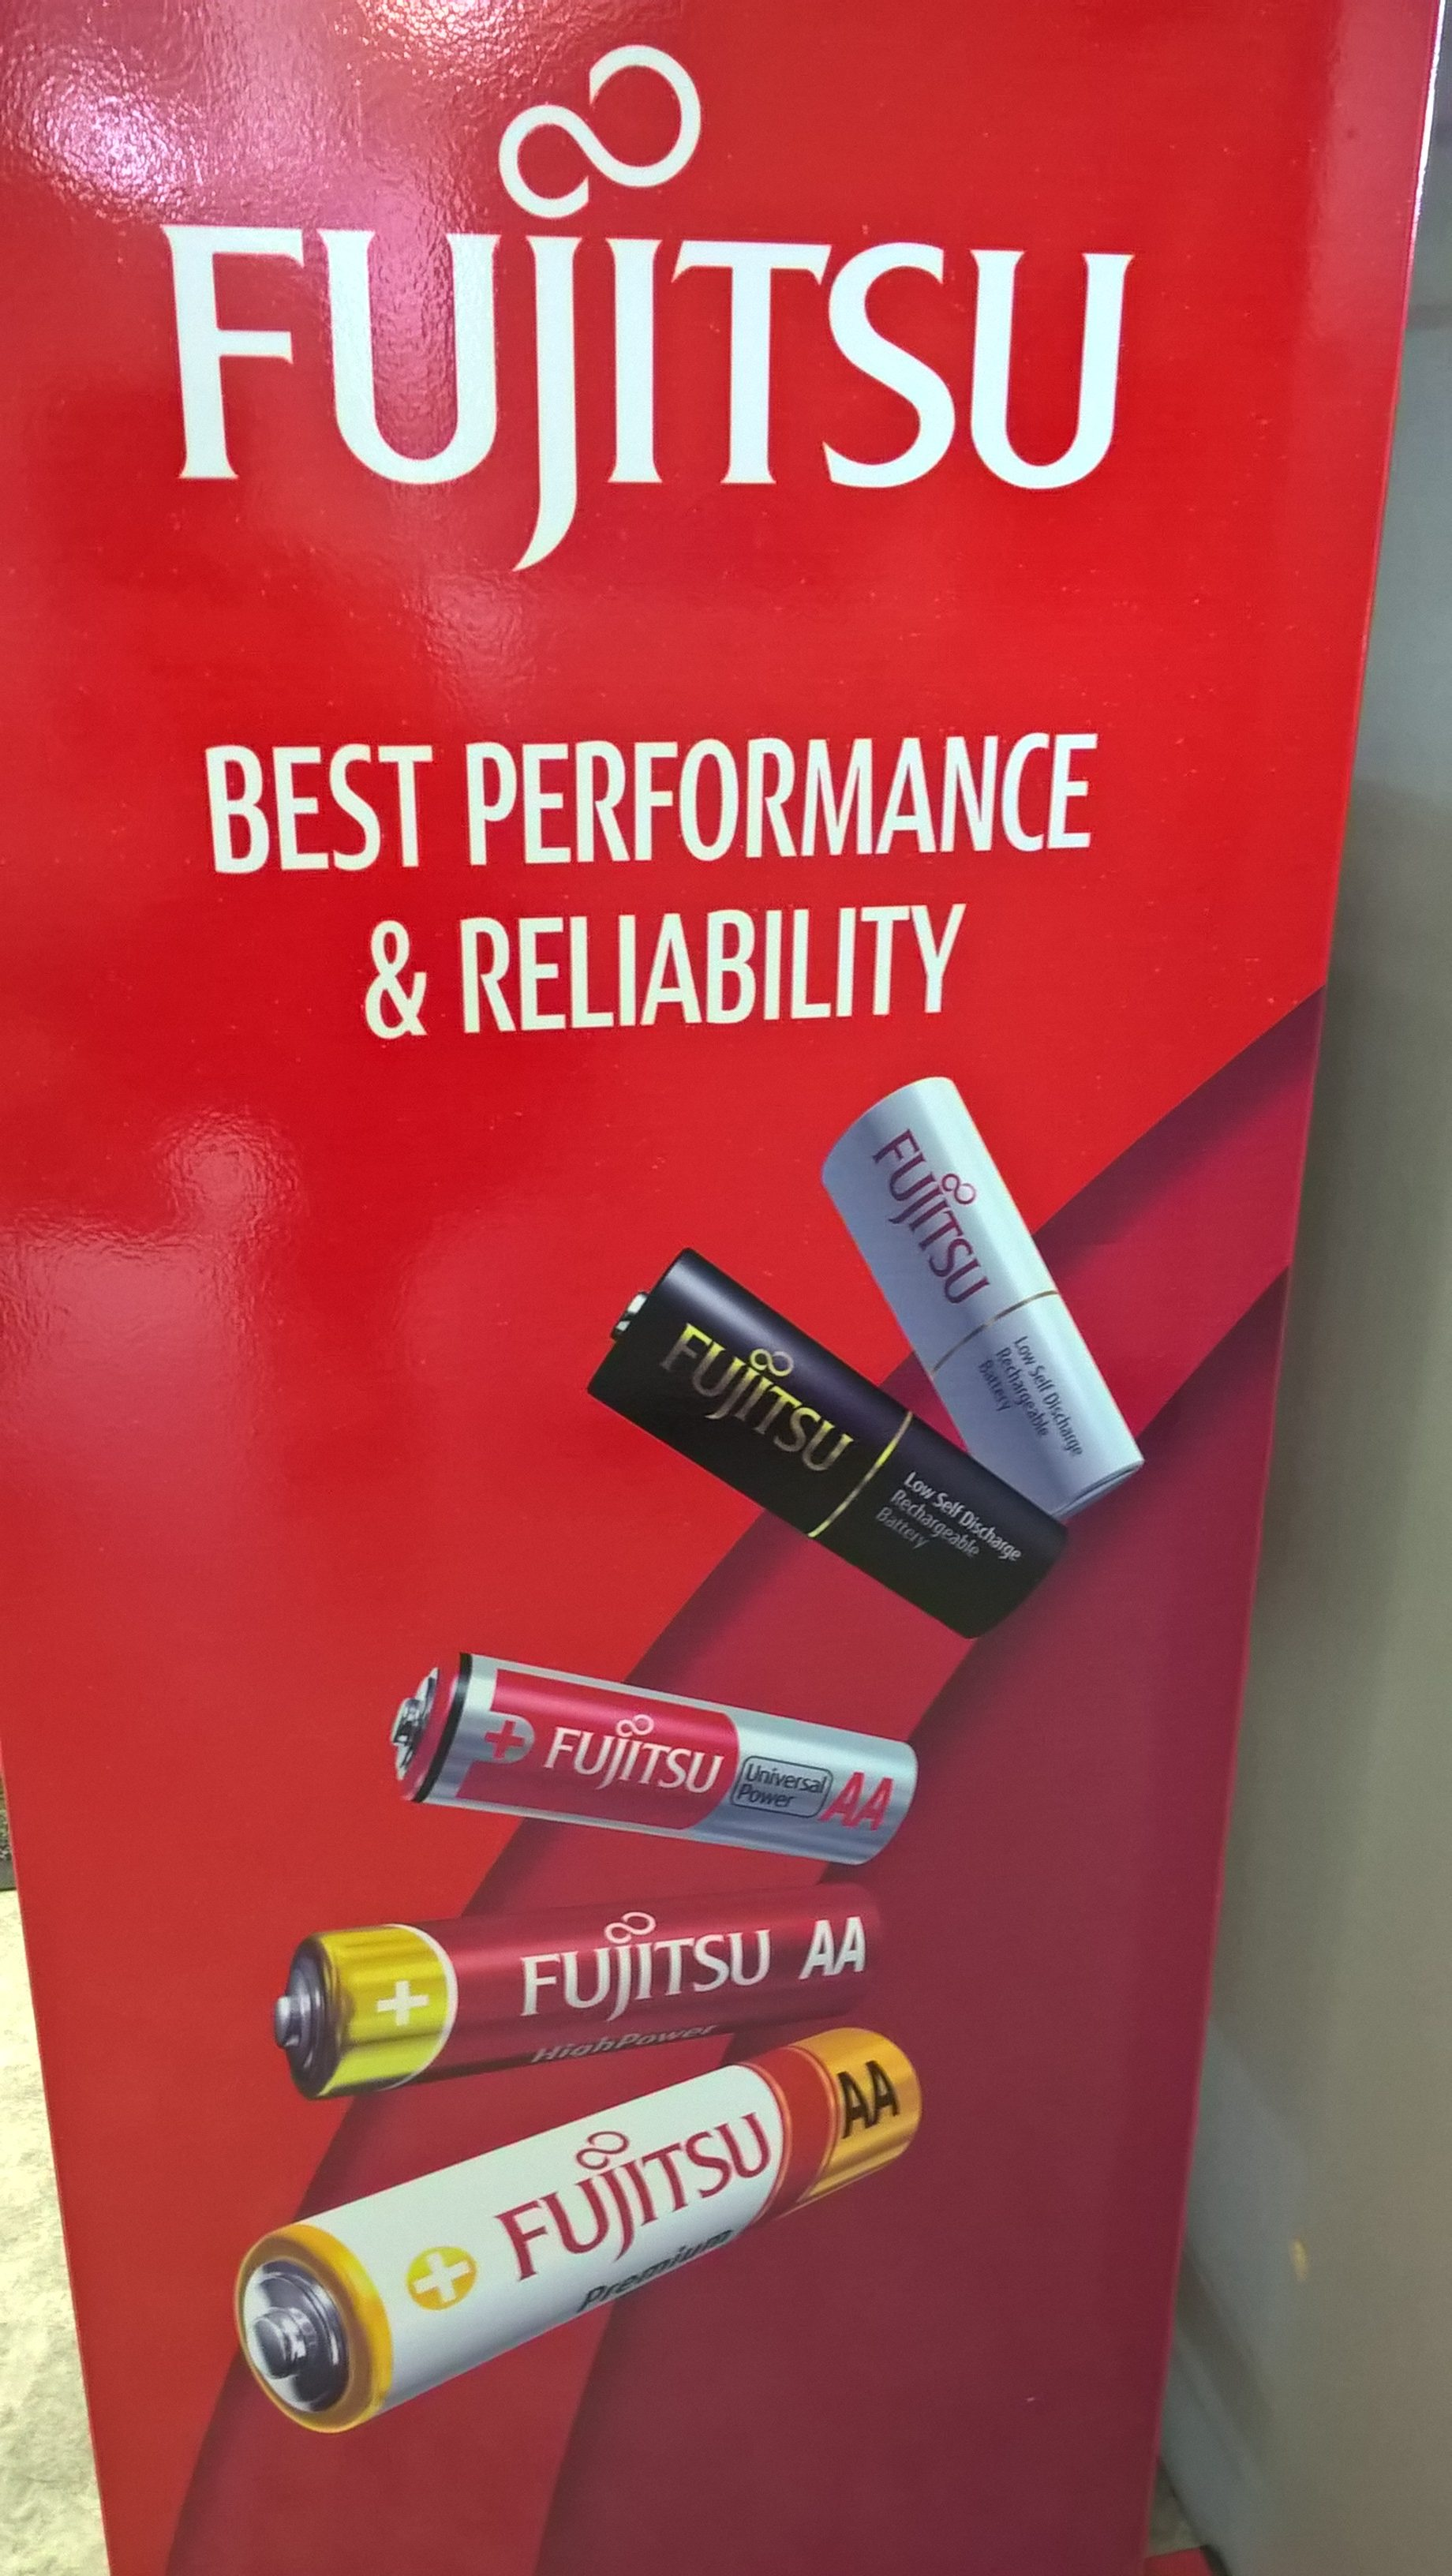 Fujitsu Batterie Best Performance and Reliability